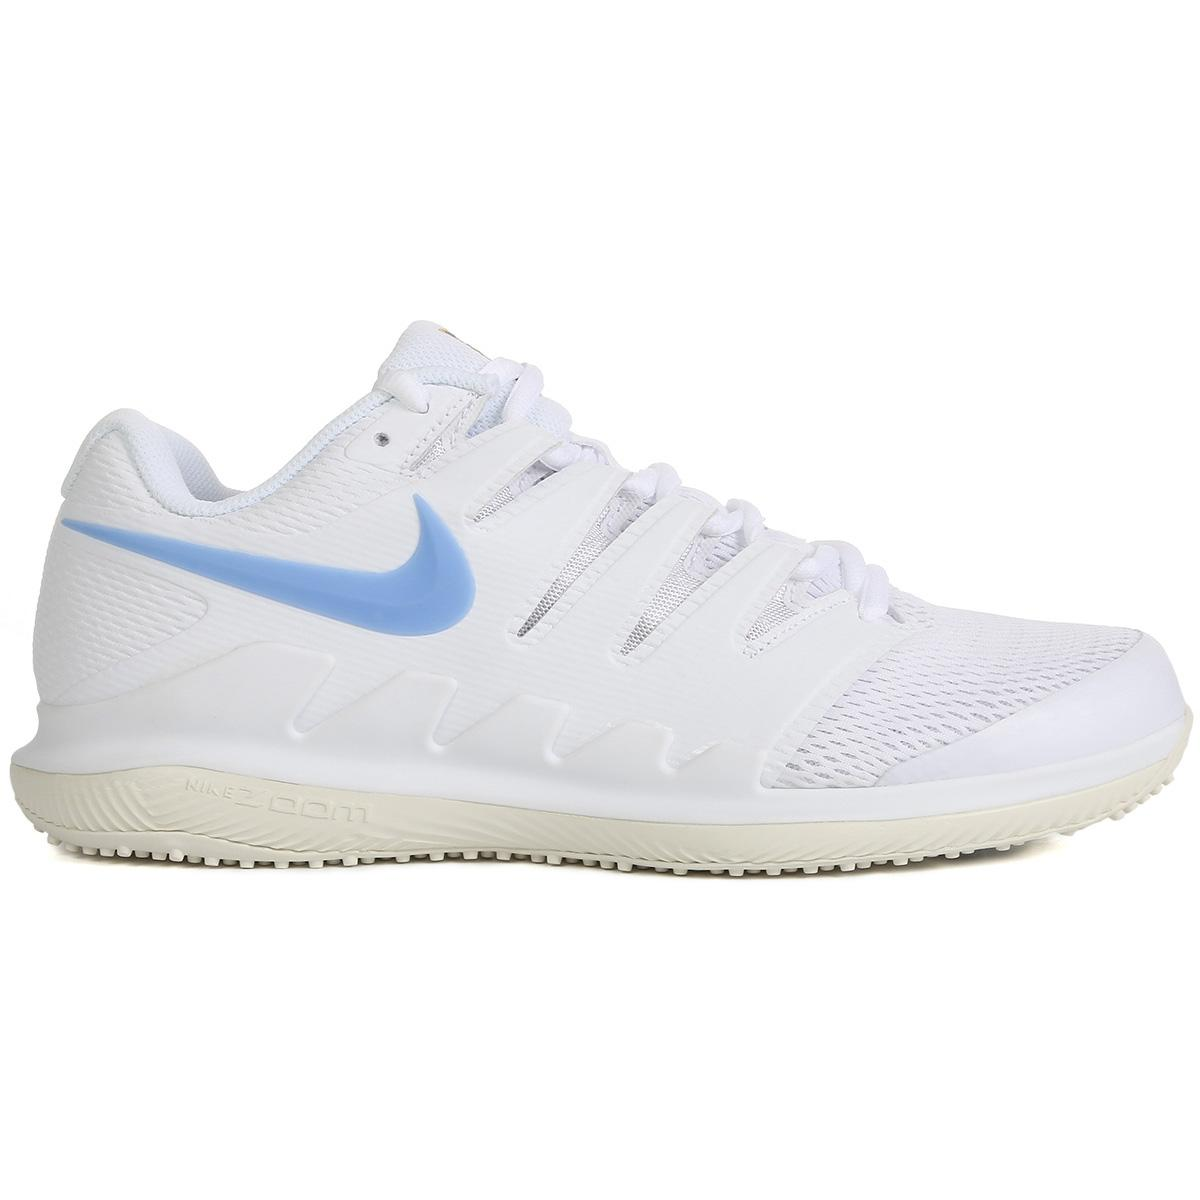 quality design c51f6 01d42 Nike Mens Air Zoom Vapor X Grass Court Tennis Shoes - White - Tennisnuts.com